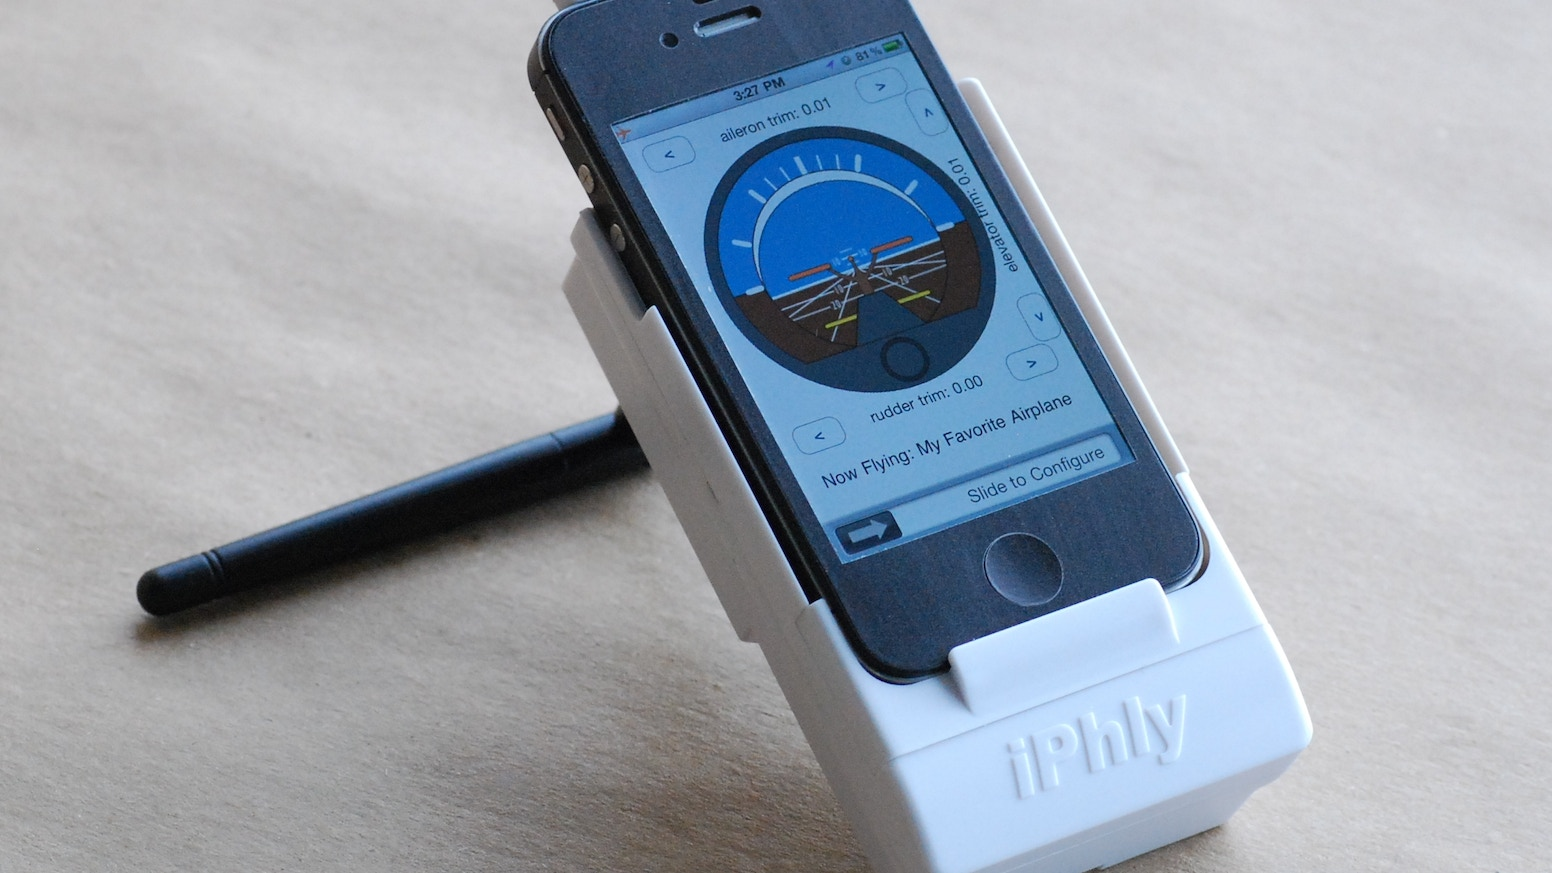 Iphly Radio Control With Iphone By Ari Krupnik Kickstarter Let S Look At The Schematic Rf Input Directly Connected Over Lets You Fly R C Airplanes And Drive Cars From Your Or Ipod Touch Both Hardware Software Are Open Source